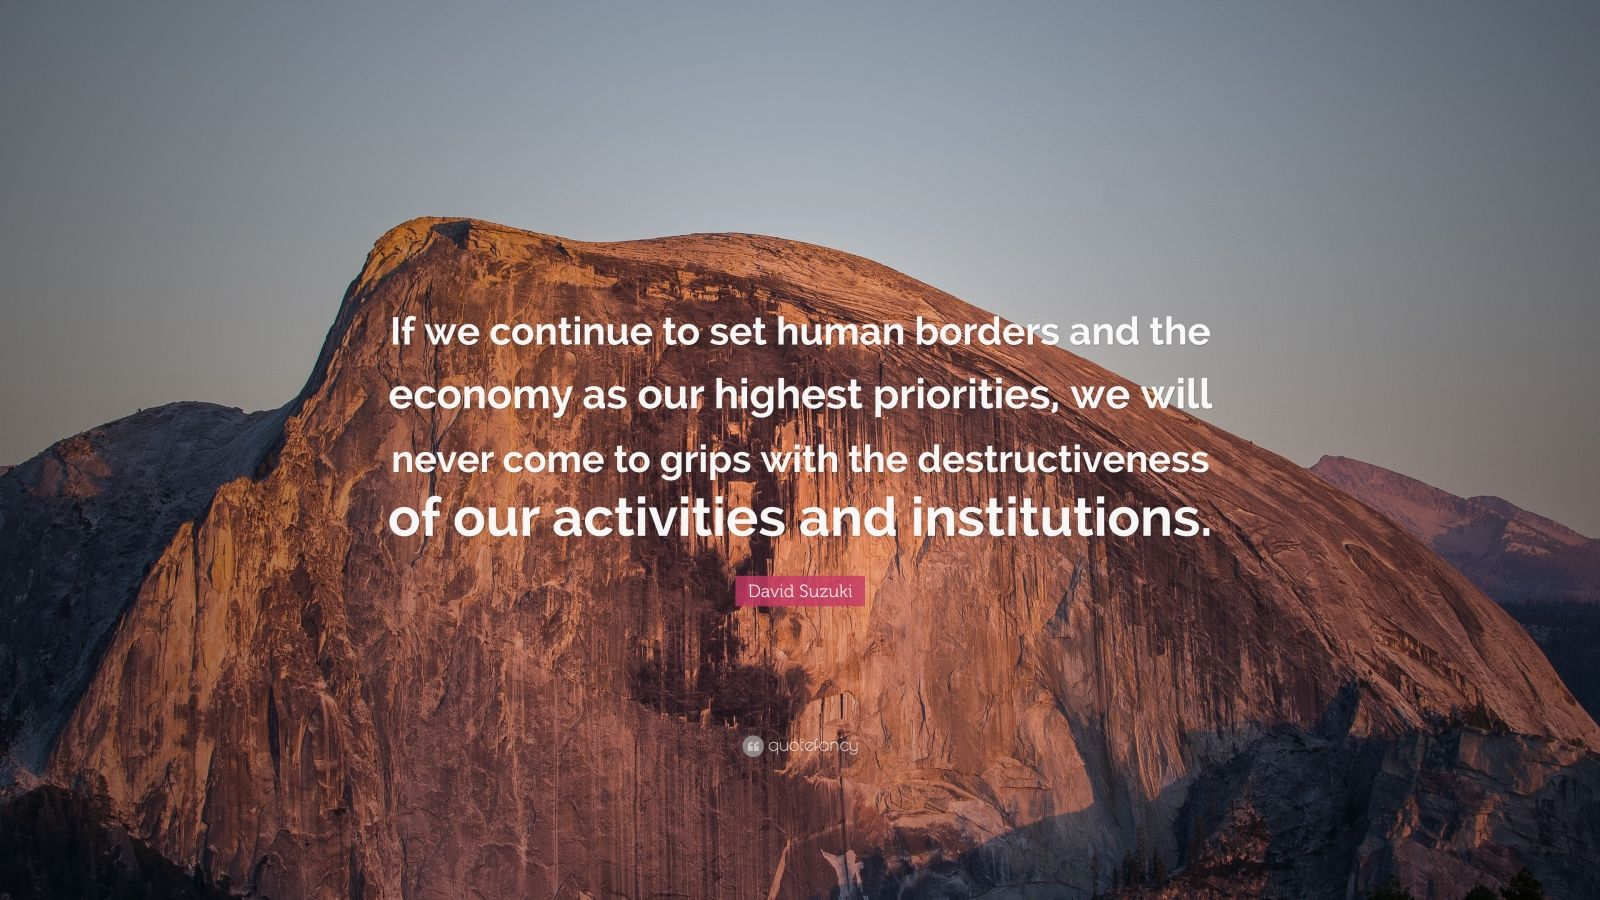 """David Suzuki Quote: """"If we continue to set human borders and the economy as our highest priorities, we will never come to grips with the destructiveness of our activities and institutions."""""""